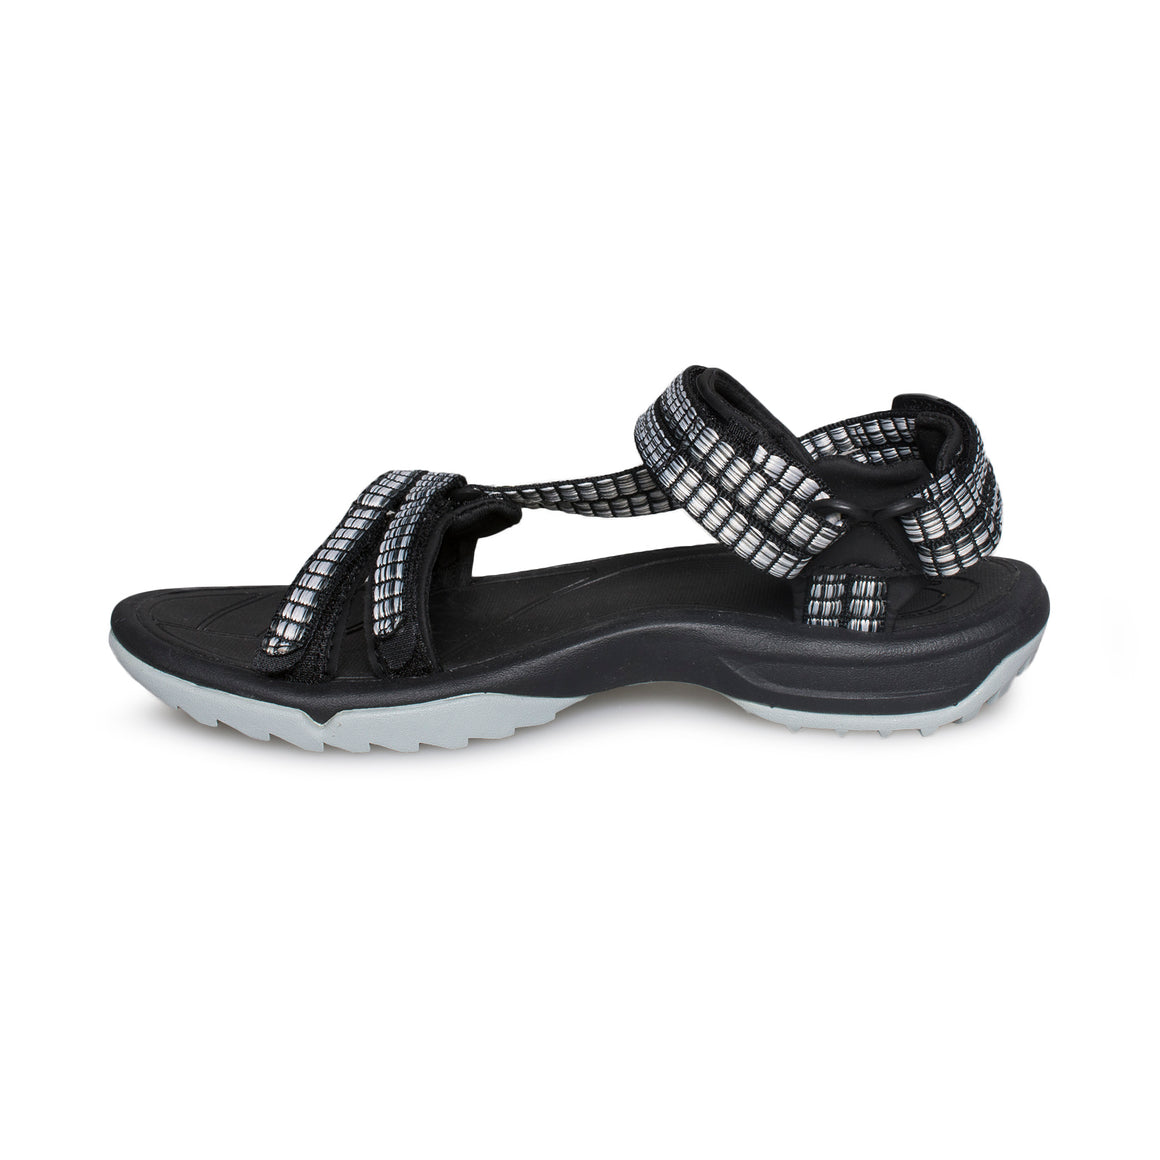 TEVA Terra Fi Lite Samba Black Multi Sandals - Women's